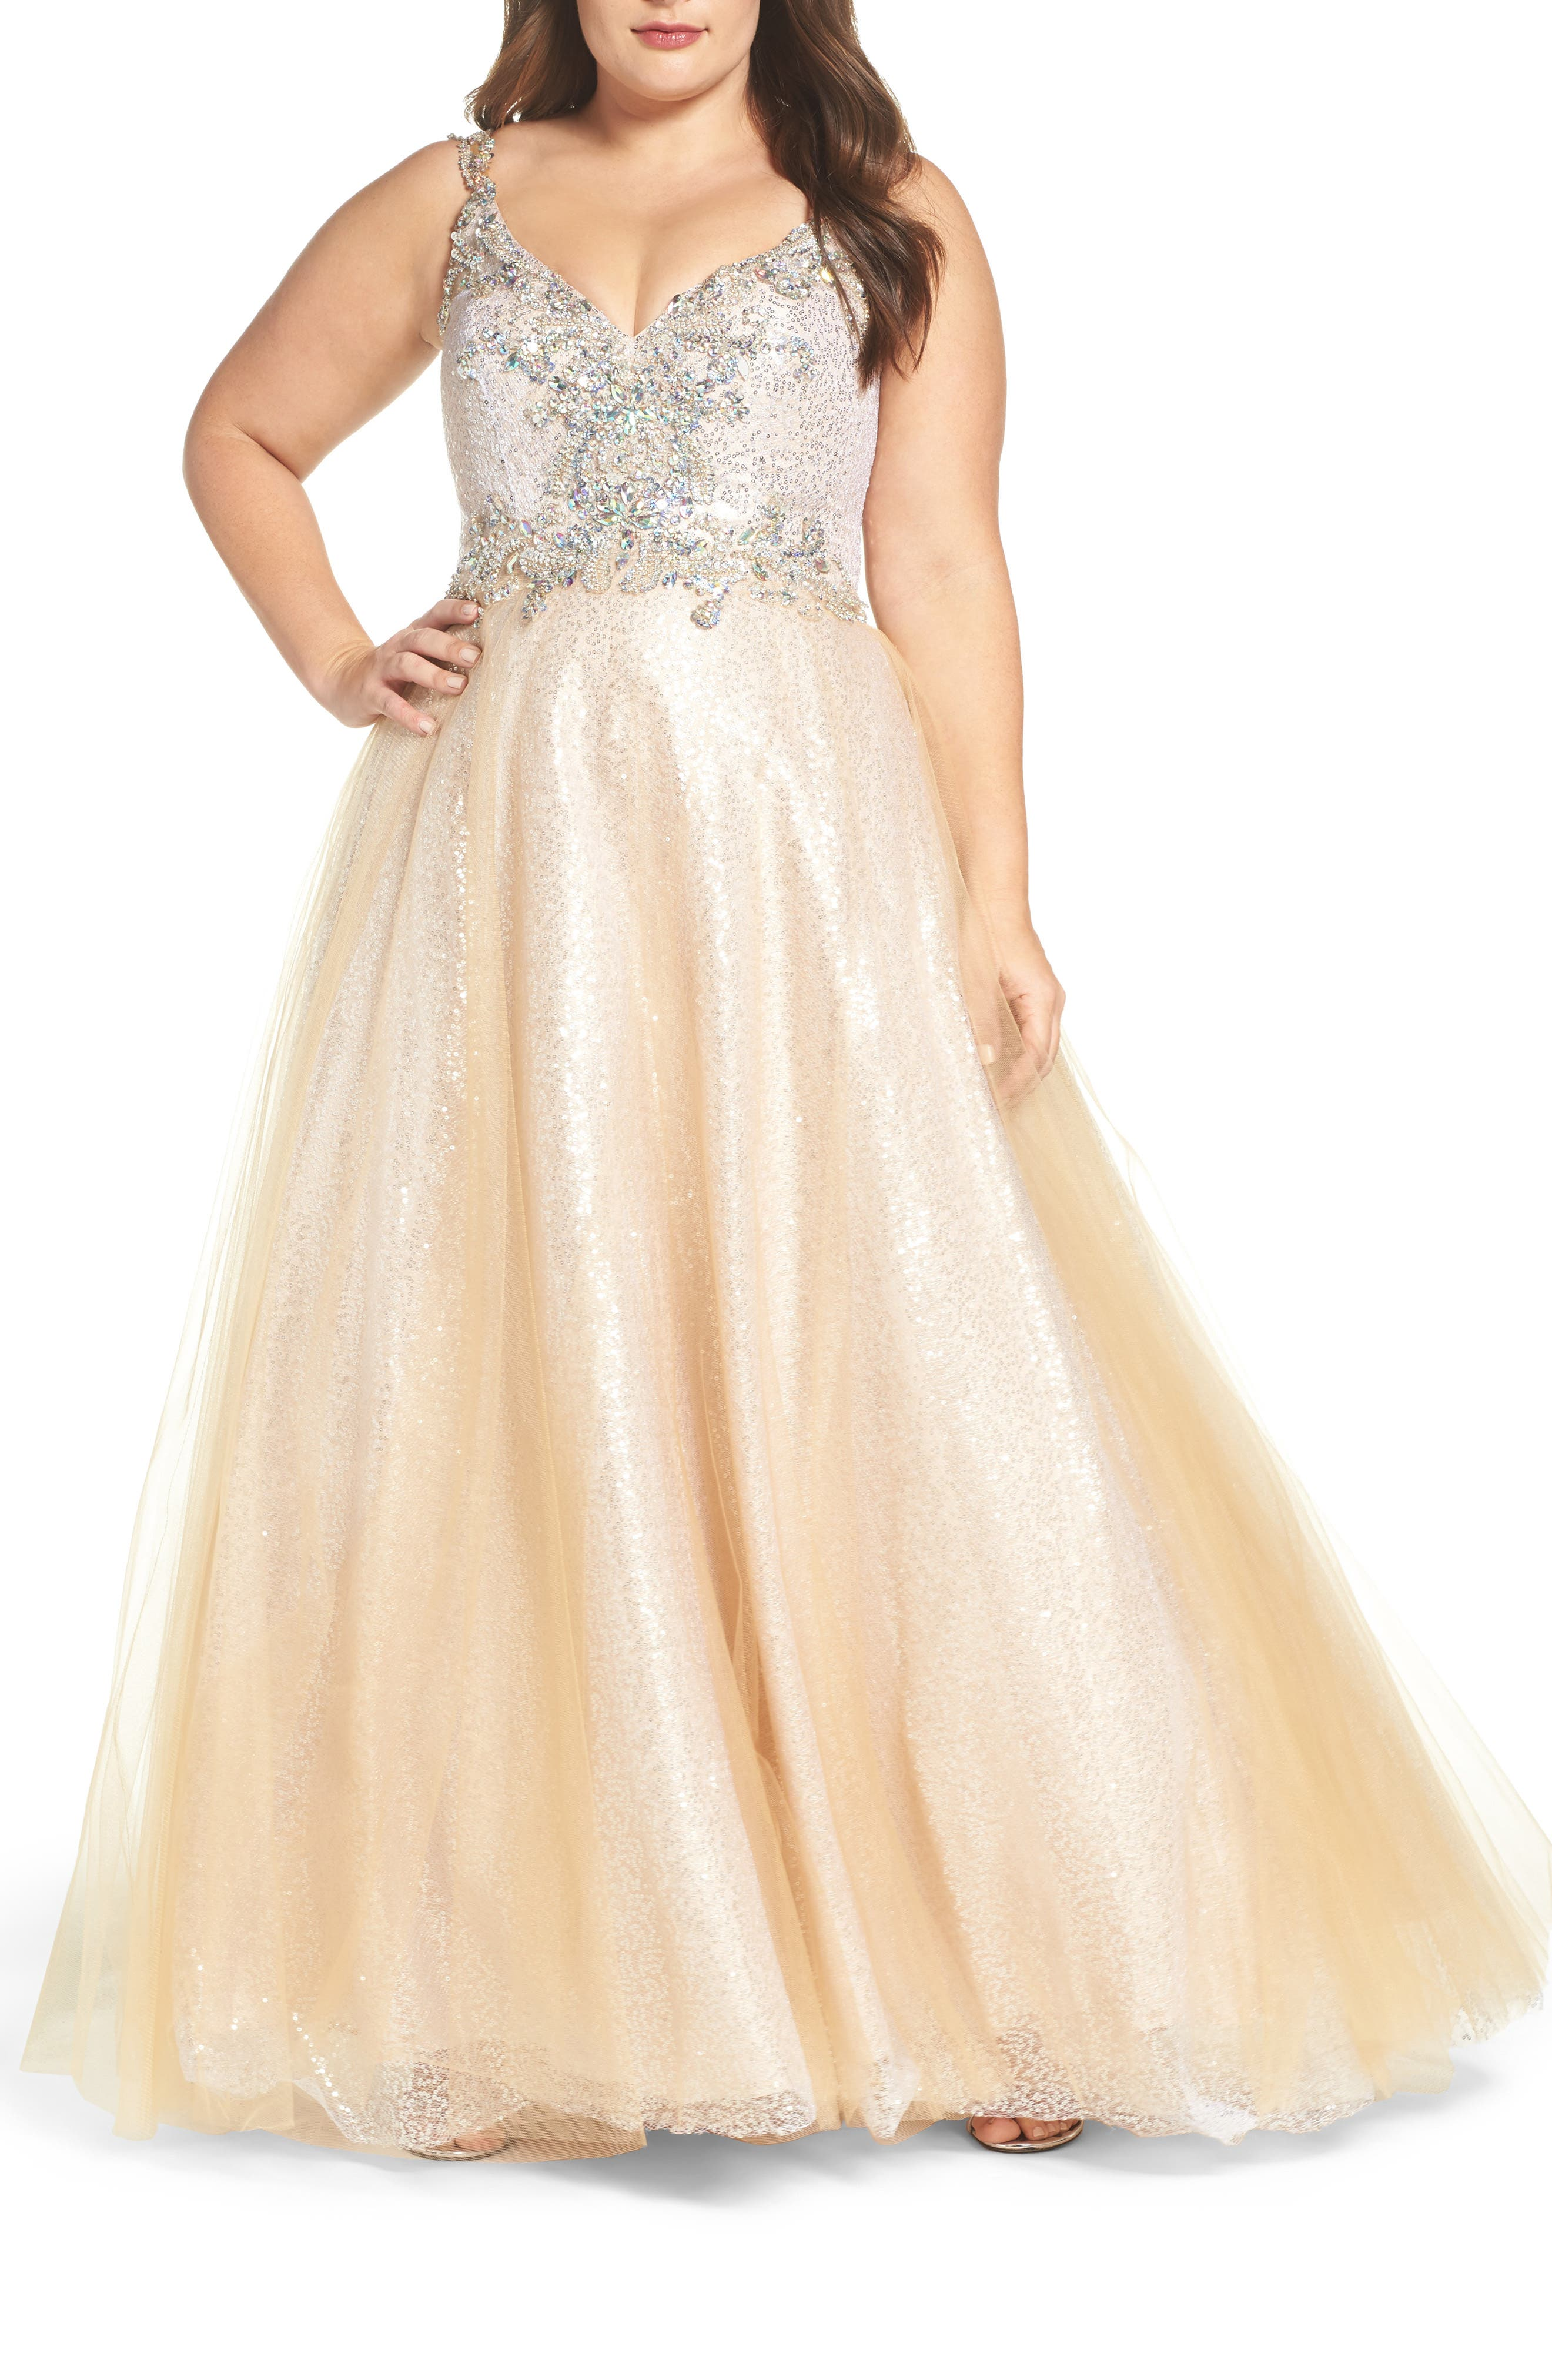 Beaded Tulle Ballgown,                             Main thumbnail 1, color,                             270